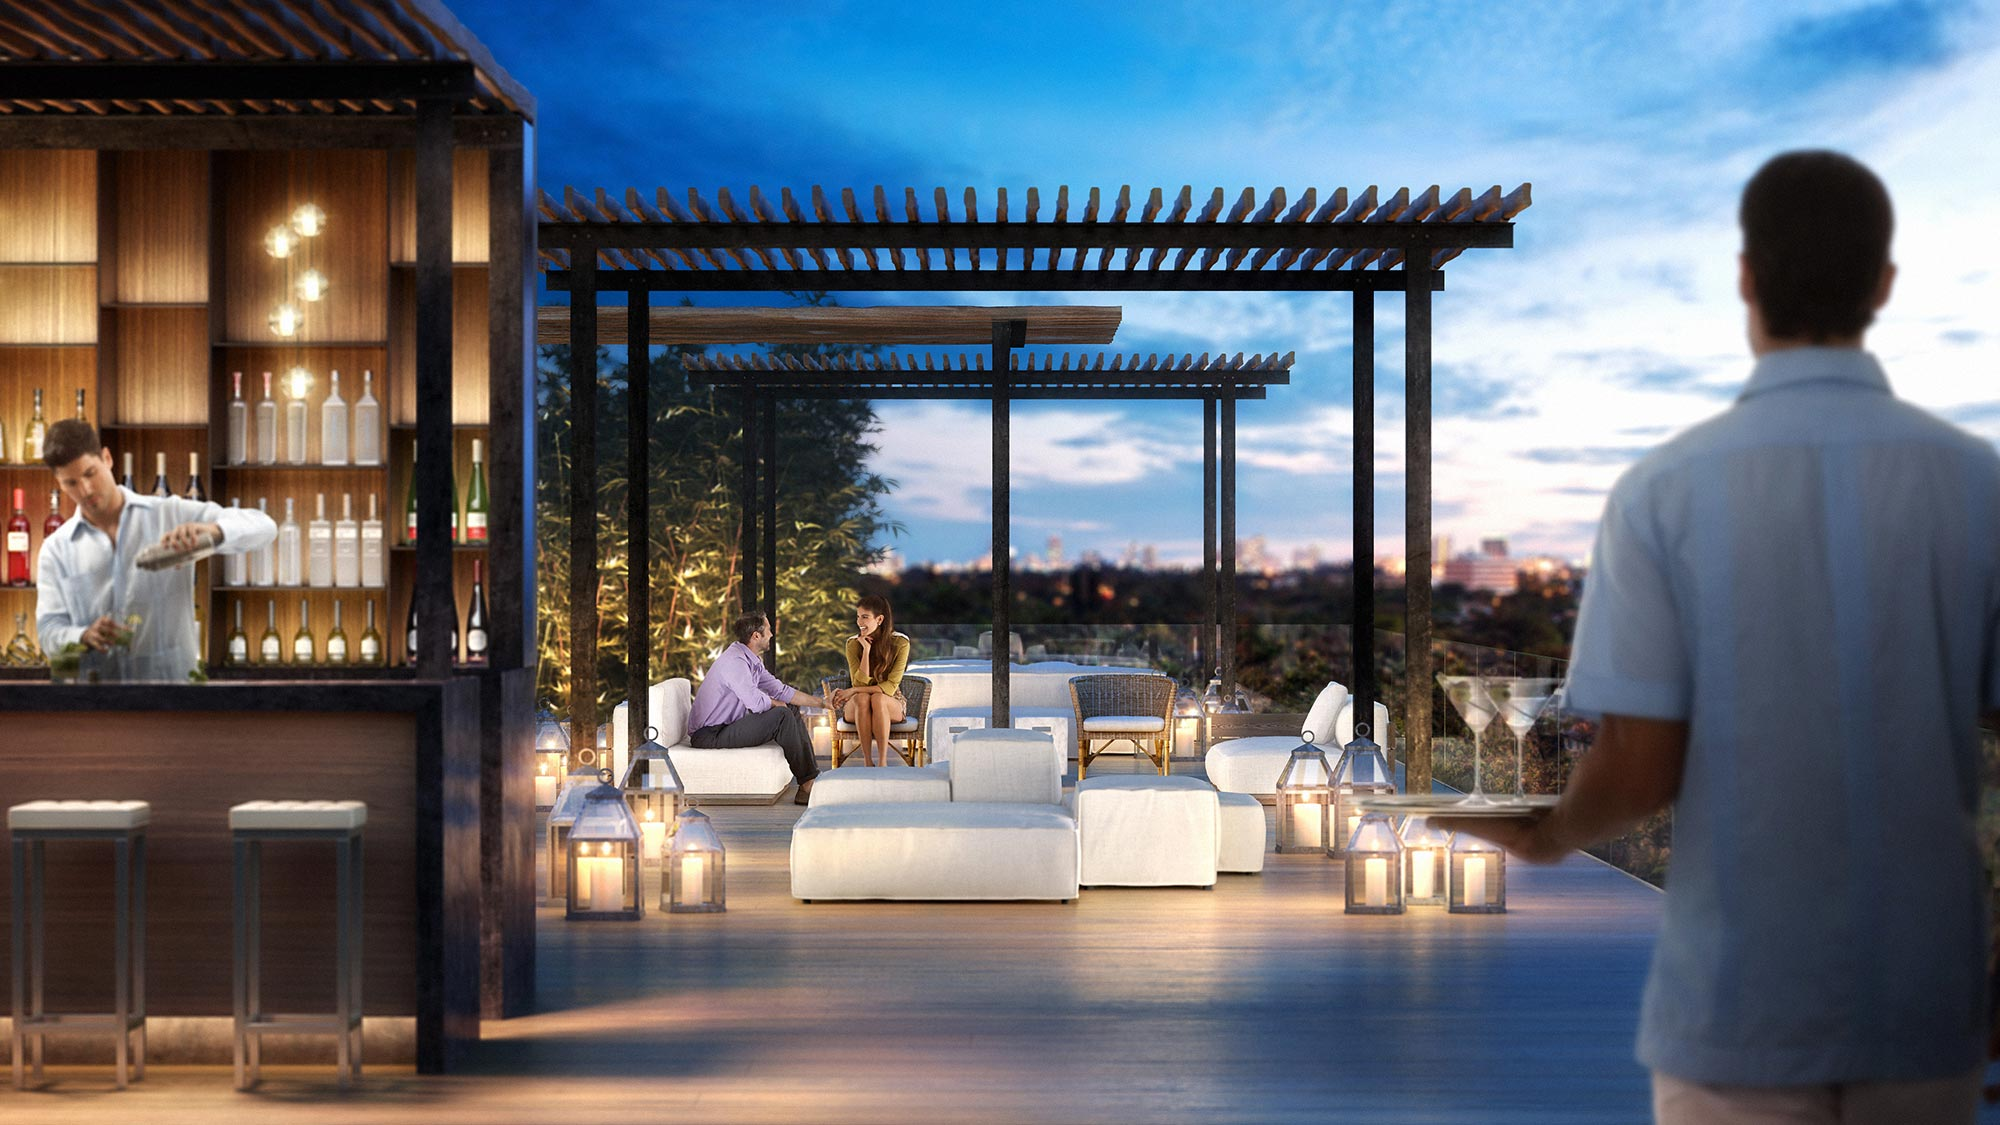 Rooftop Pool Bar at the Miami luxury condos of The Ritz-Carlton Residences, Miami Beach